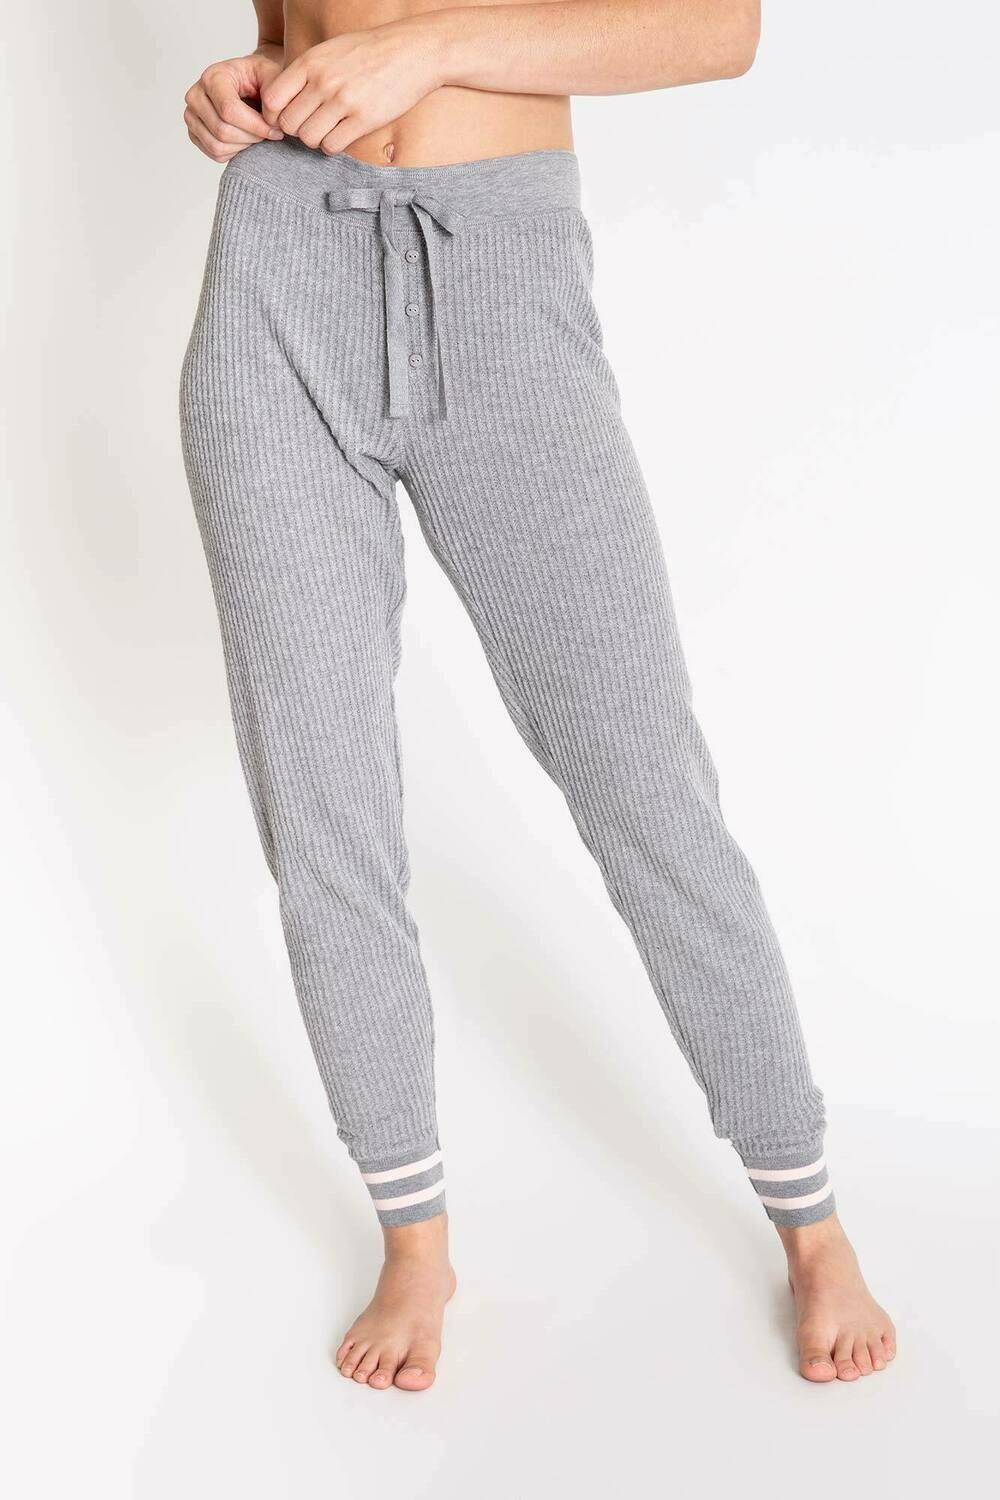 PJ Salvage Grey Draw String PJ Pant Size L and XL